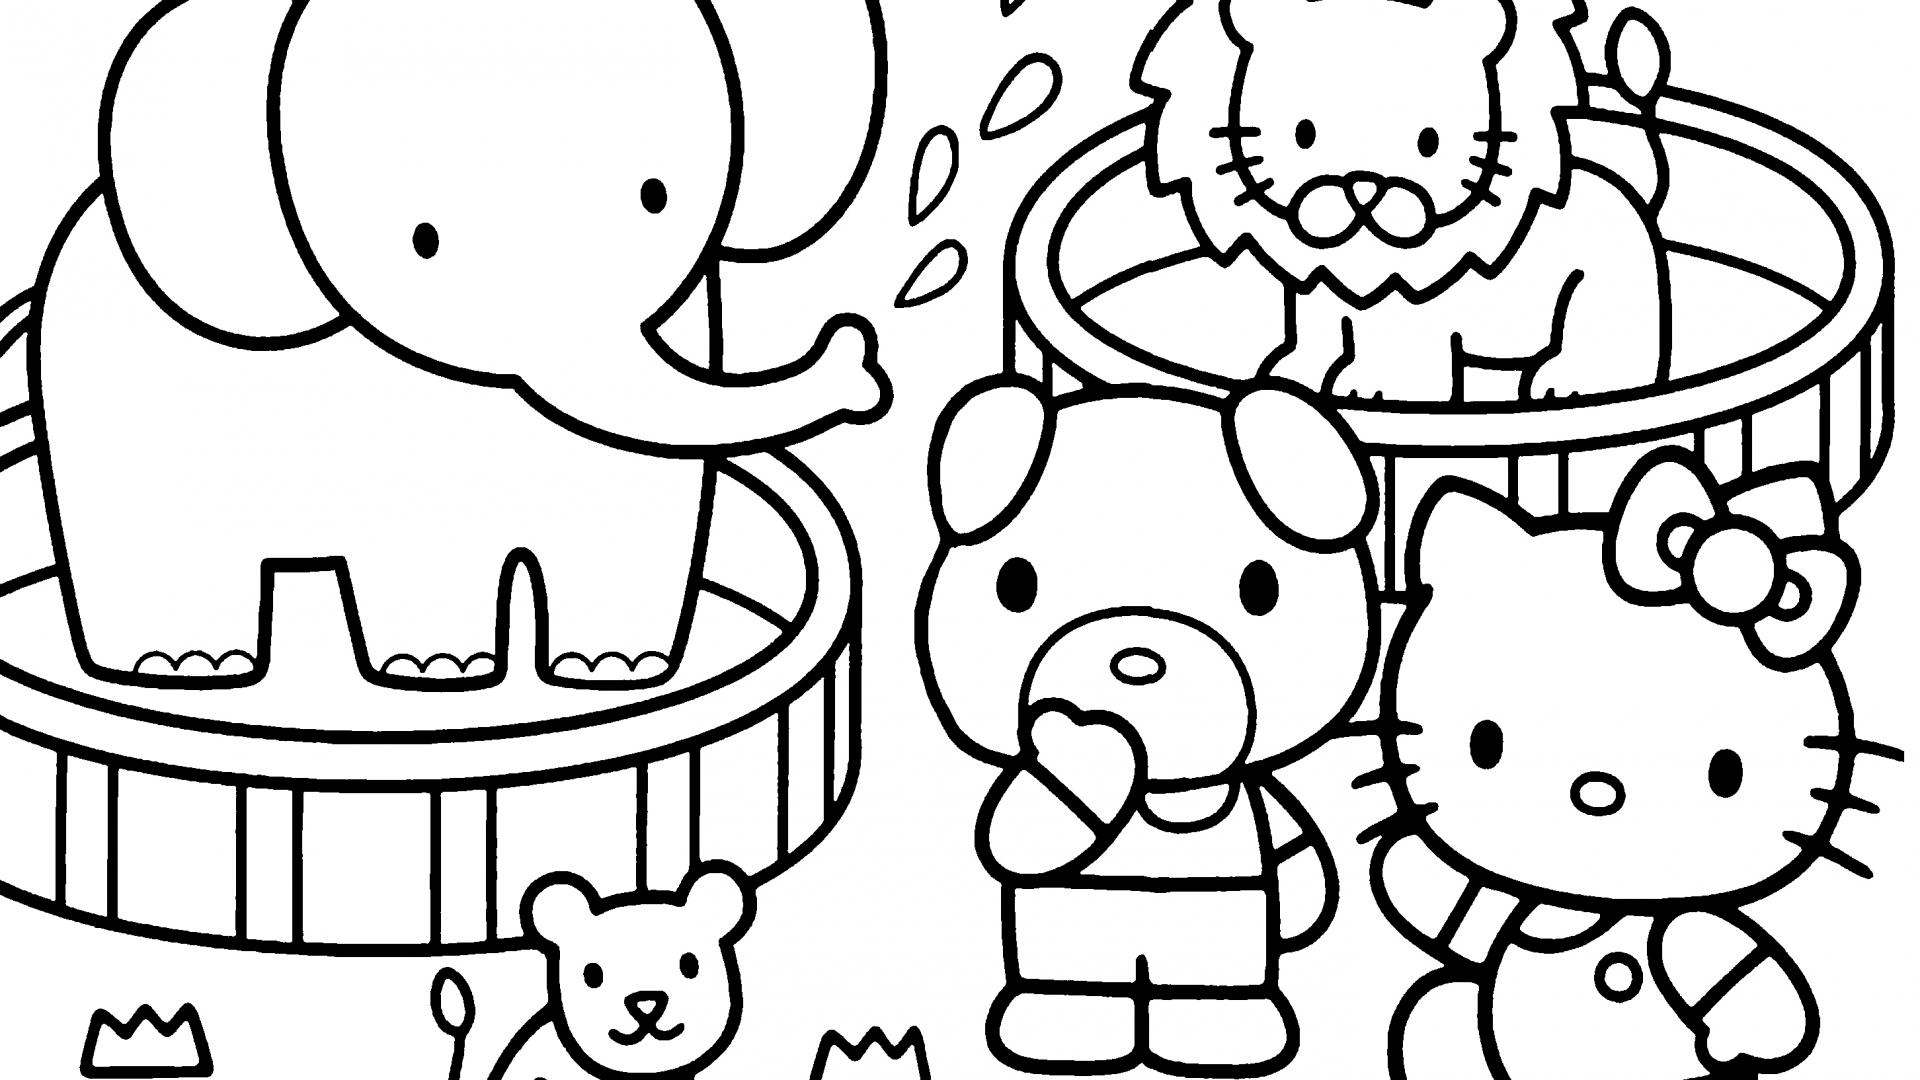 Hello Kitty Coloring Pages 04 of 15 - In the Zoo - HD Wallpapers ...